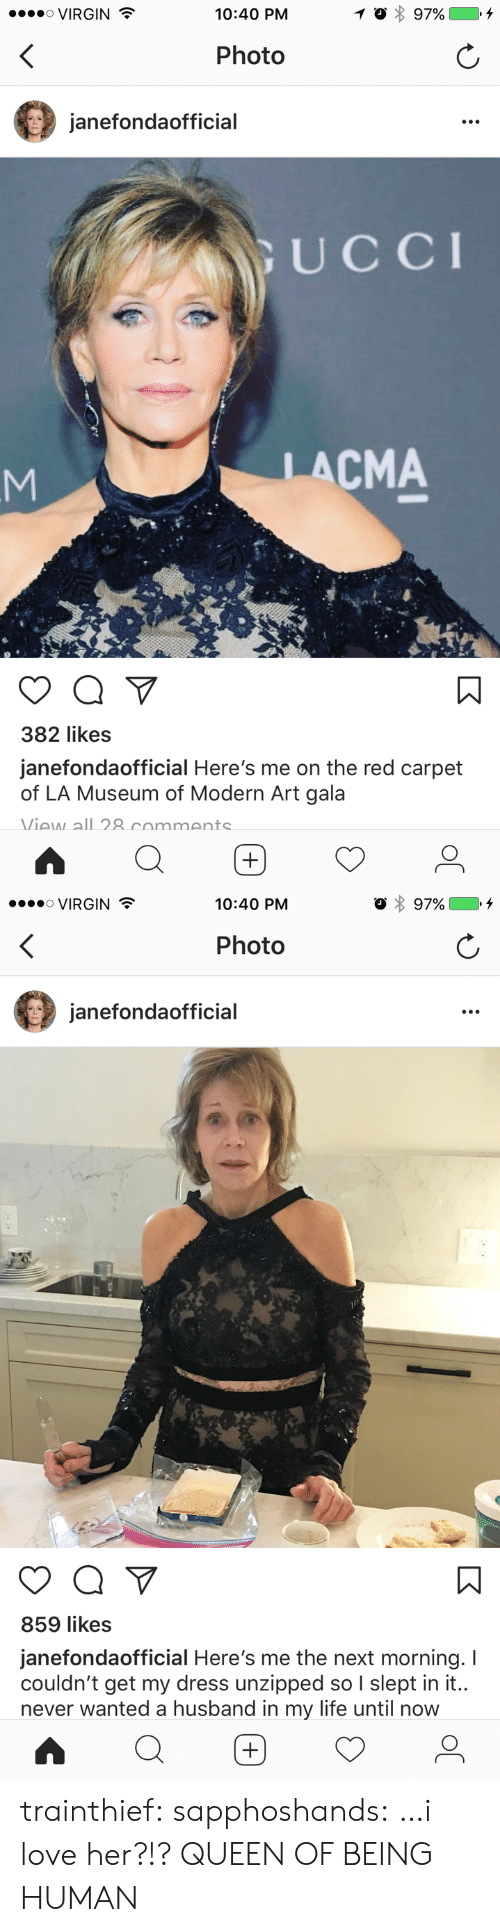 Queen Of: ....。VIRGIN  10:40 PM  Photo  janefondaofficial  UCCI  LACMA  382 likes  janefondaofficial Here's me on the red carpet  of LA Museum of Modern Art gala  Viaw all 8 commants   VIRGIN  10:40 PM  Photo  janefondaofficial  859 likes  janefondaofficial Here's me the next morning. I  couldn't get my dress unzipped so I slept in it..  never wanted a husband in my life until now trainthief: sapphoshands: …i love her?!? QUEEN OF BEING HUMAN